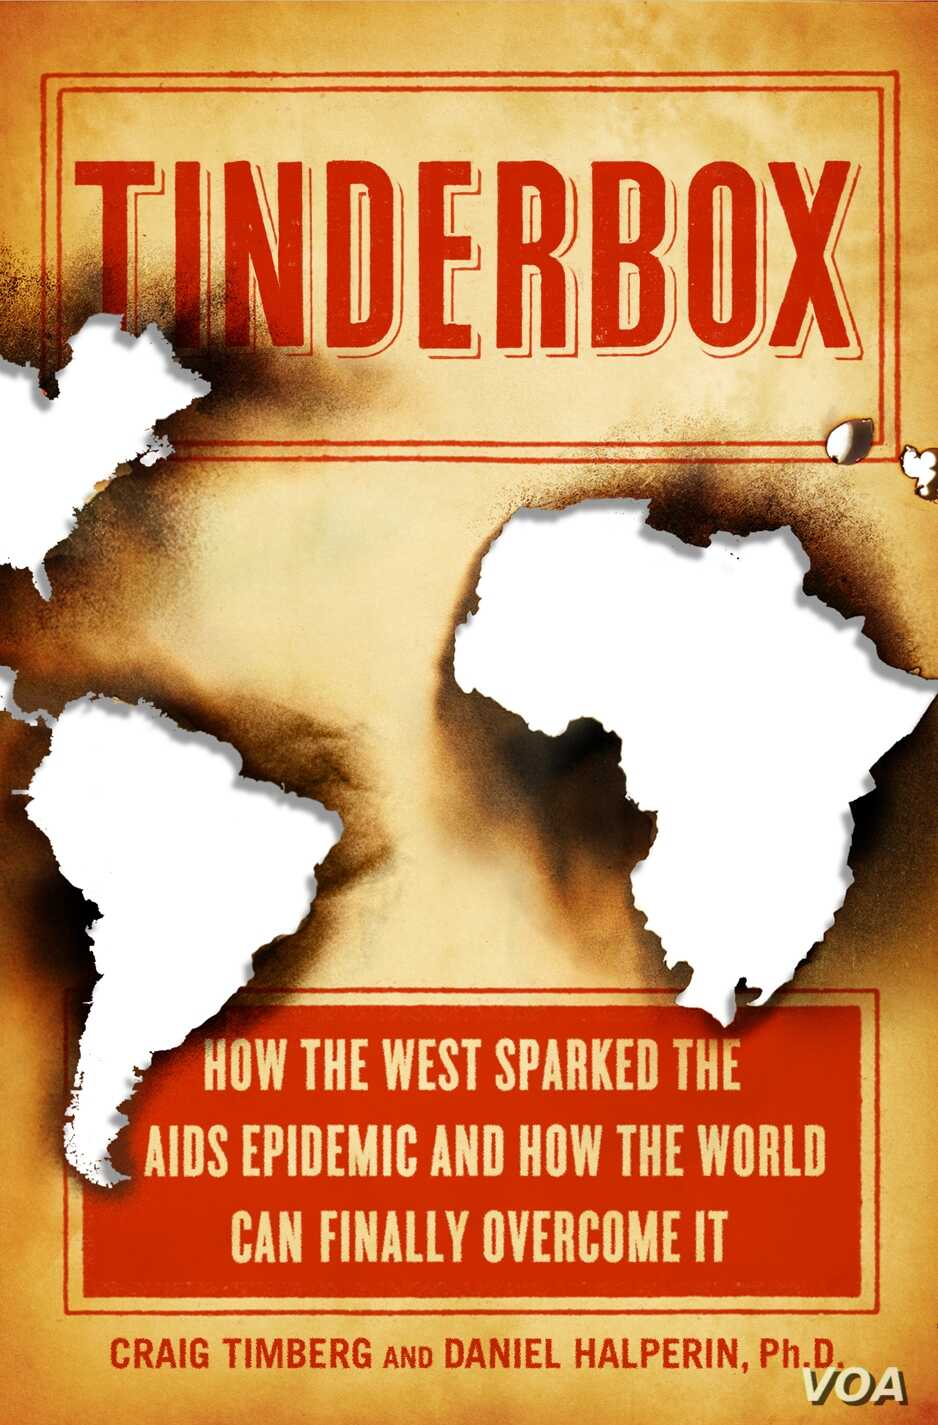 """Cover of """"Tinderbox: How the West Sparked the AIDS Epidemic and How the World Can Finally Overcome It."""" (photo: Daniel Halperin)"""